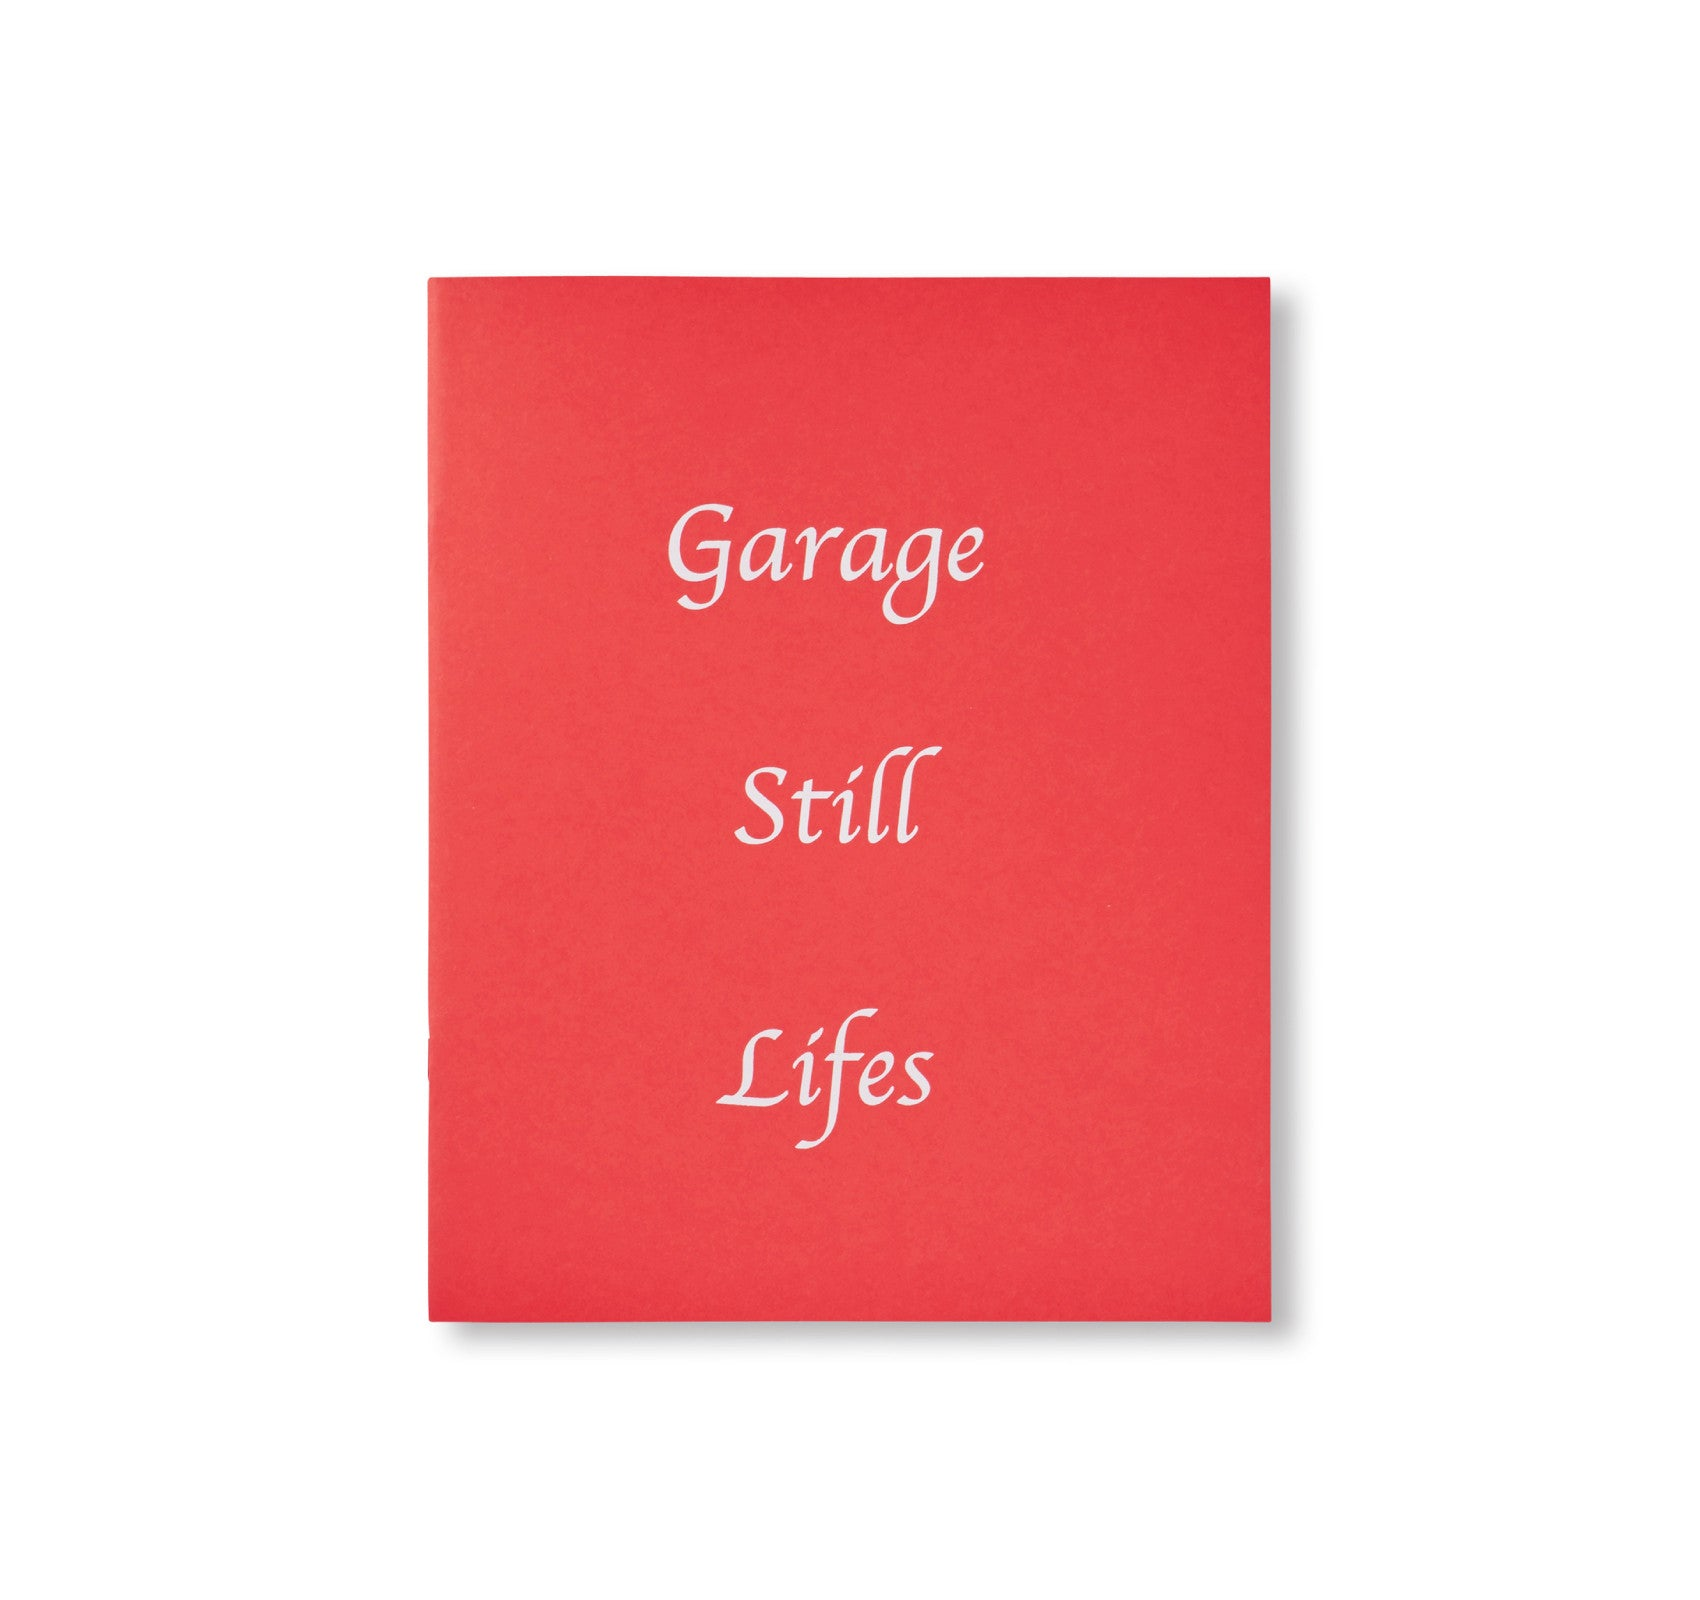 GARAGE STILL LIFES by Corey Olsen